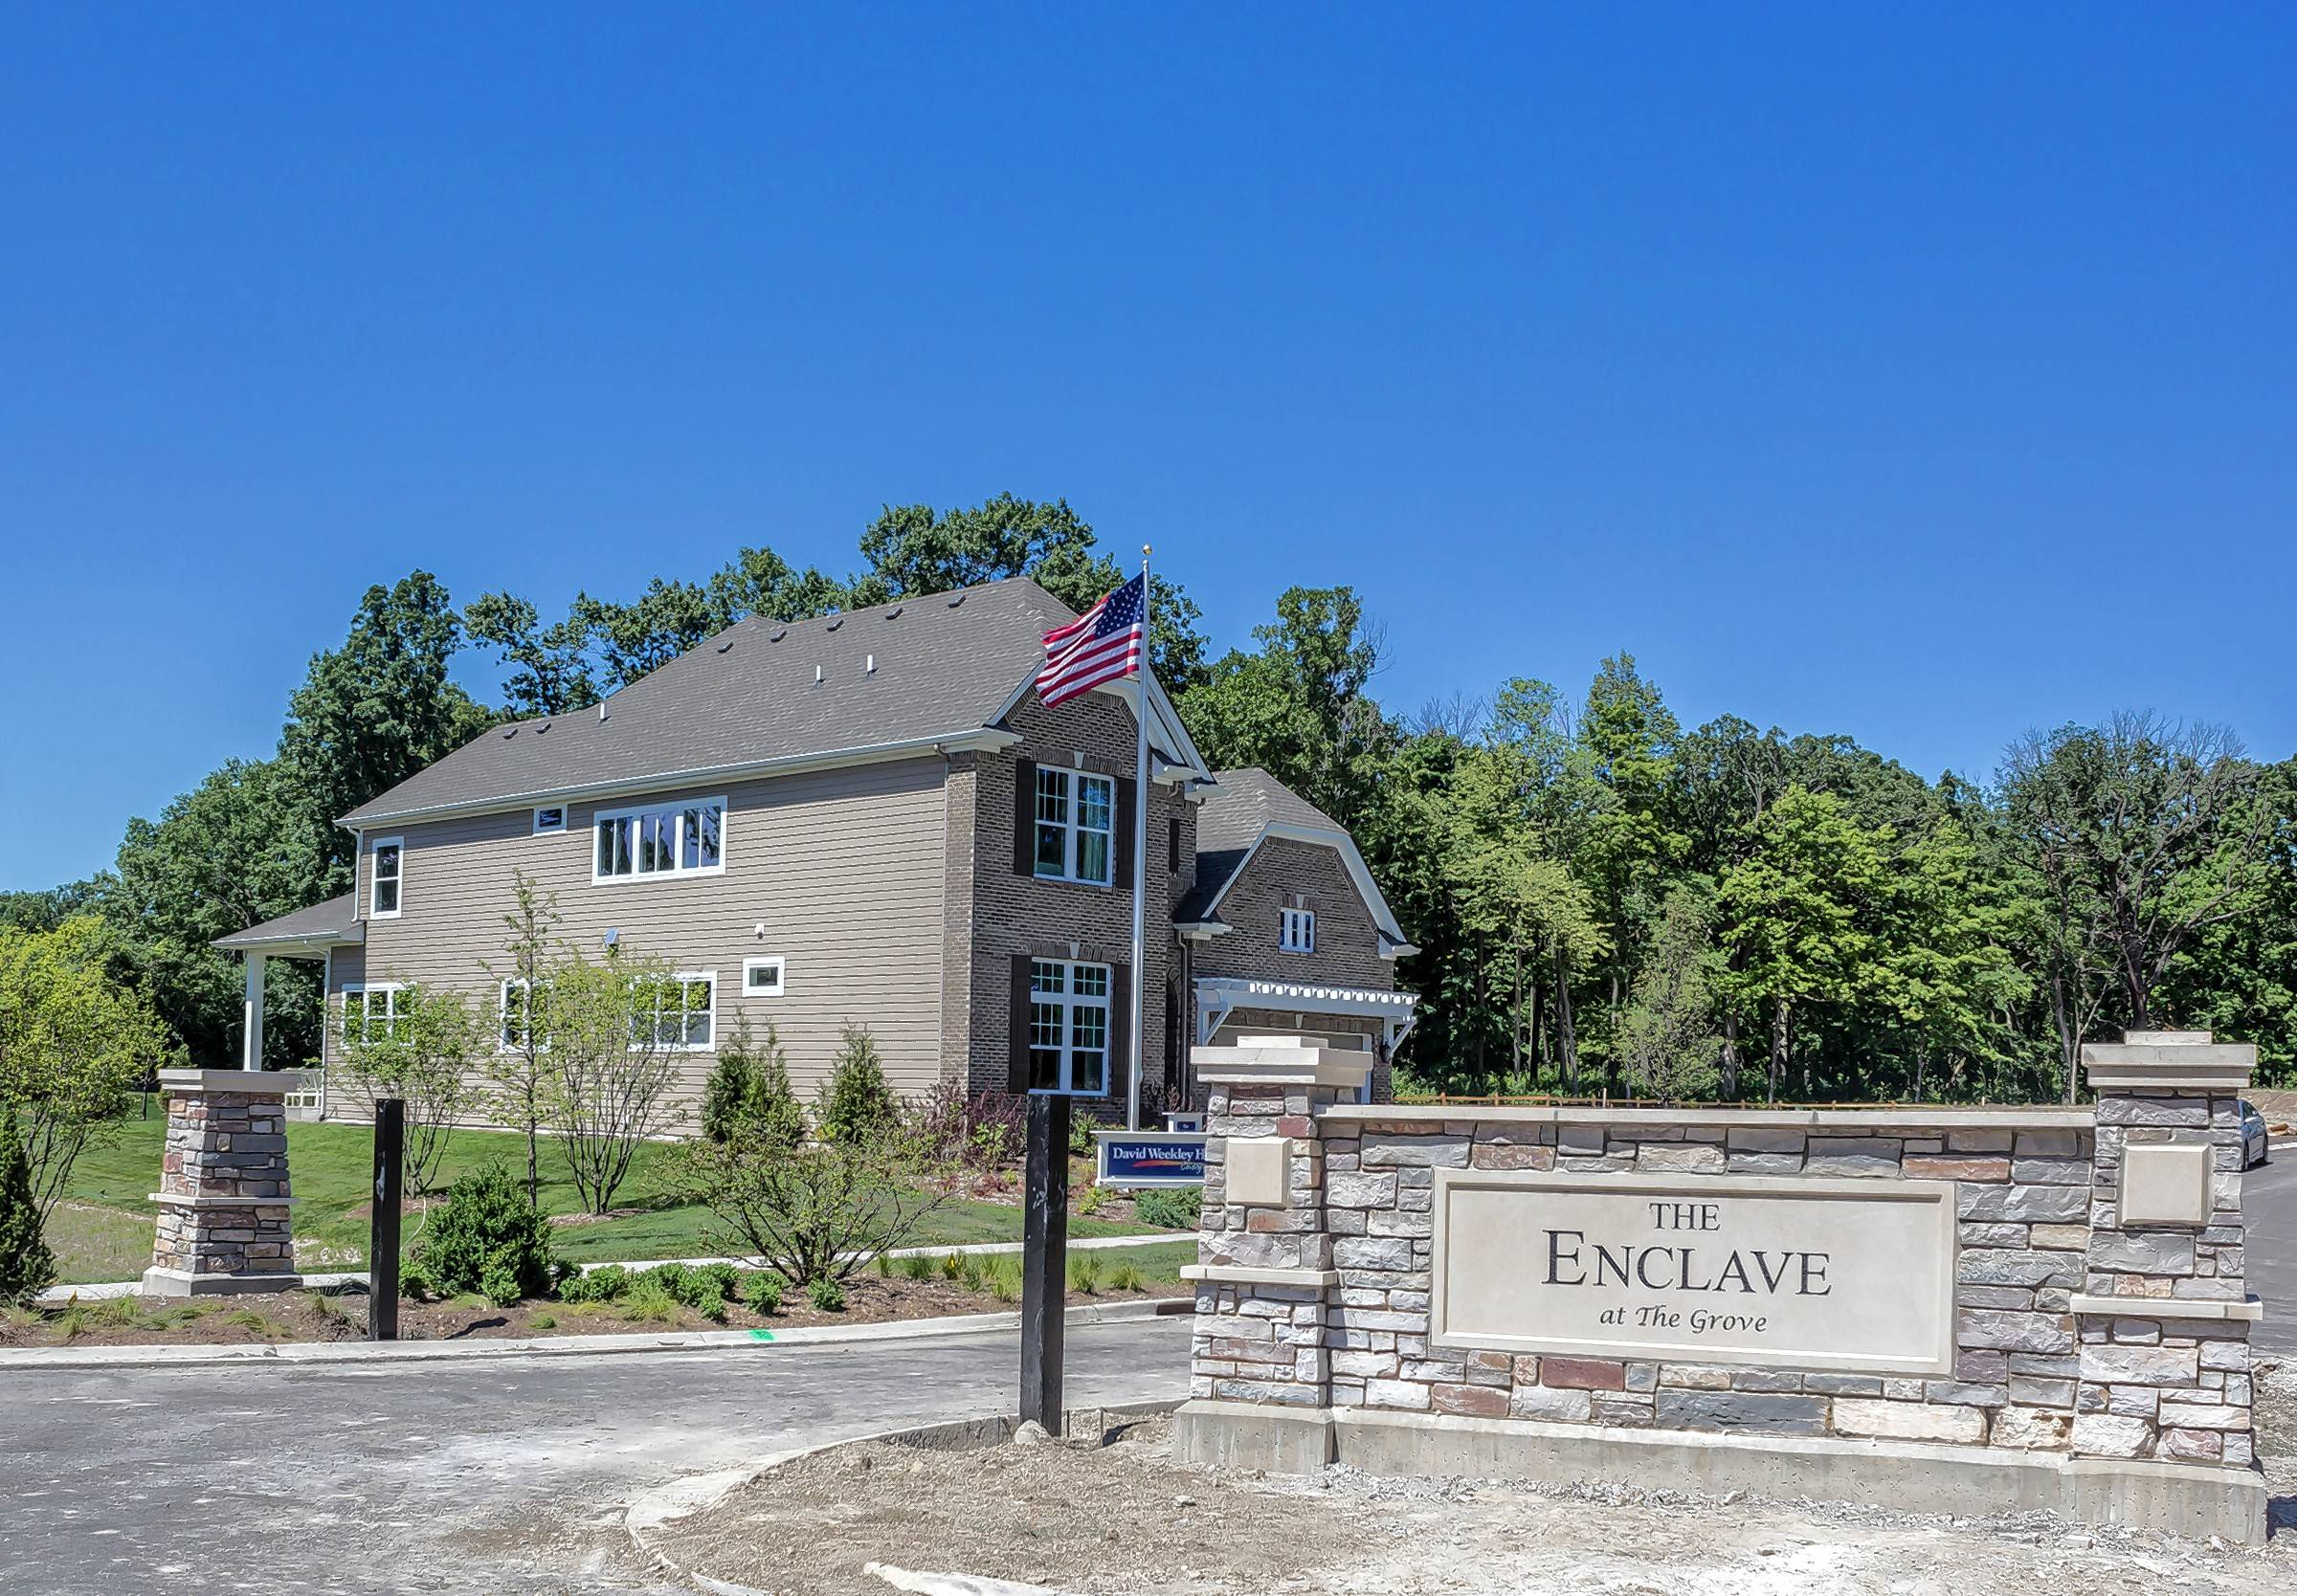 The Enclave at the Grove is a new, multigenerational gated community being built in Glenview.